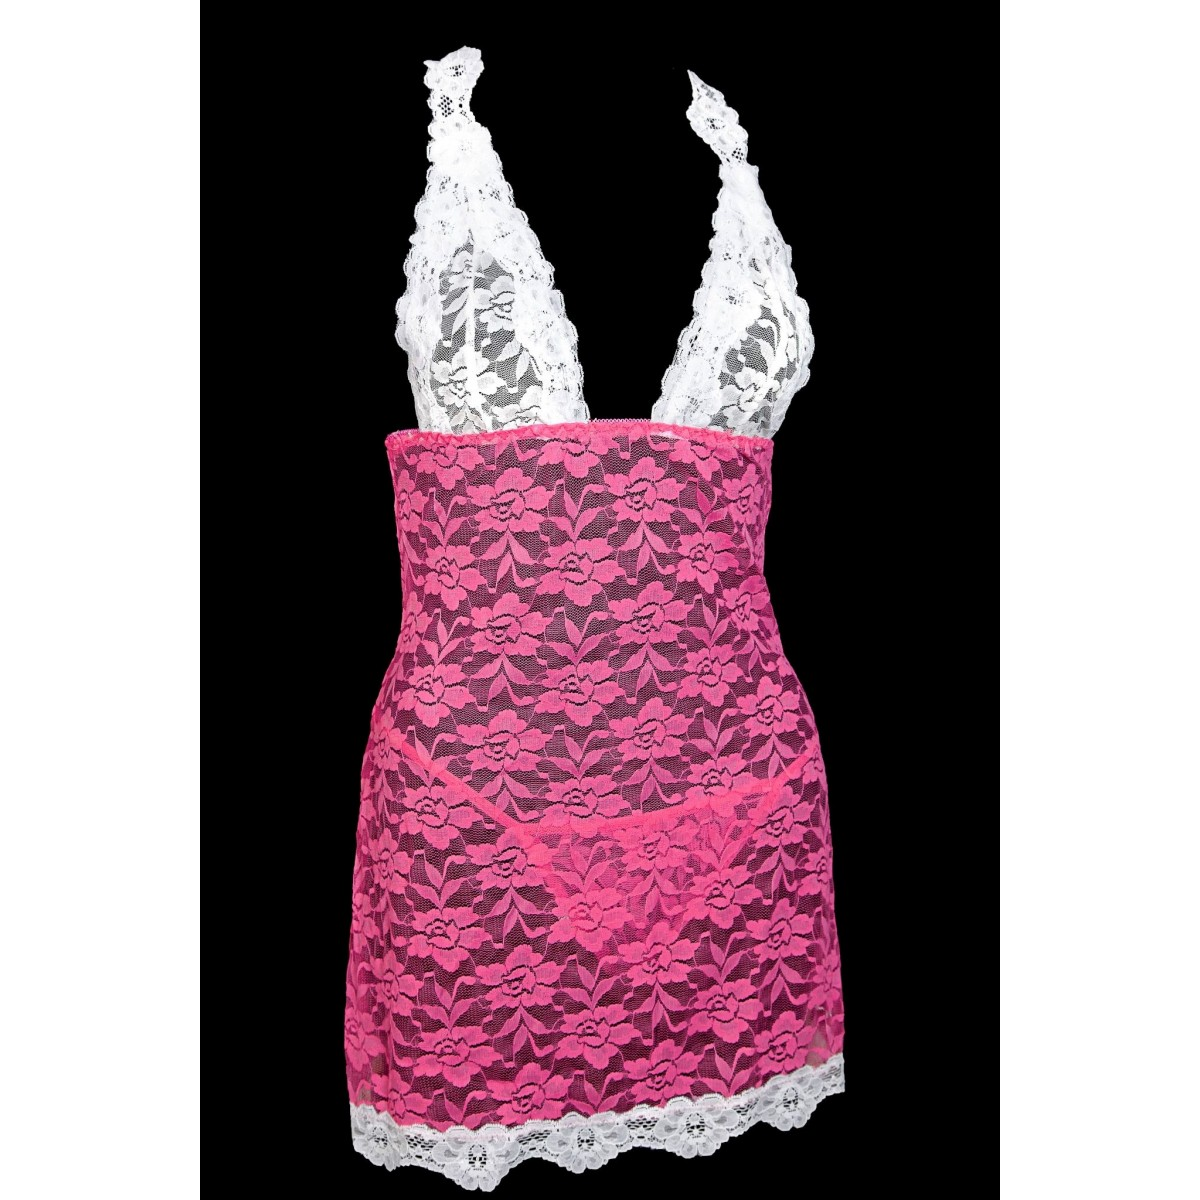 Pink and white lace chemise